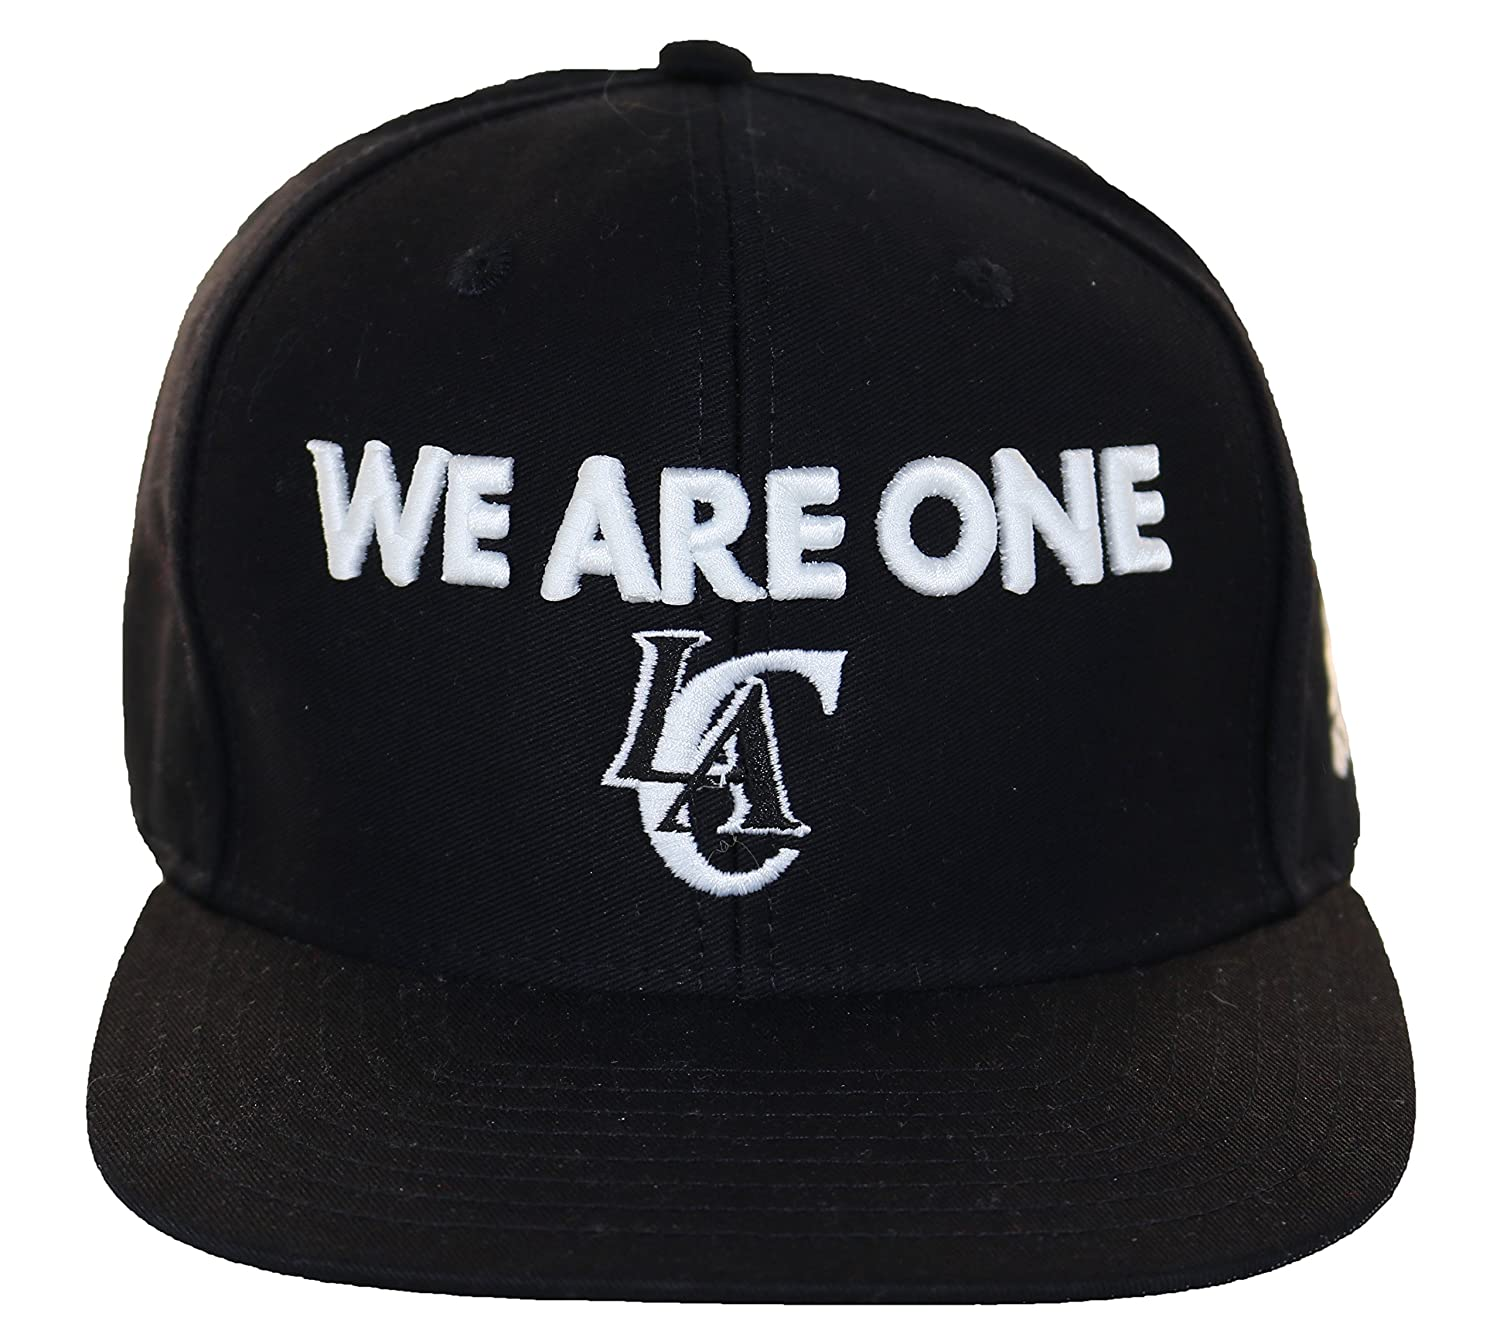 75c3444e869d3 ... top quality amazon adidas mens we are one los angeles clippers snapback  cap one size black